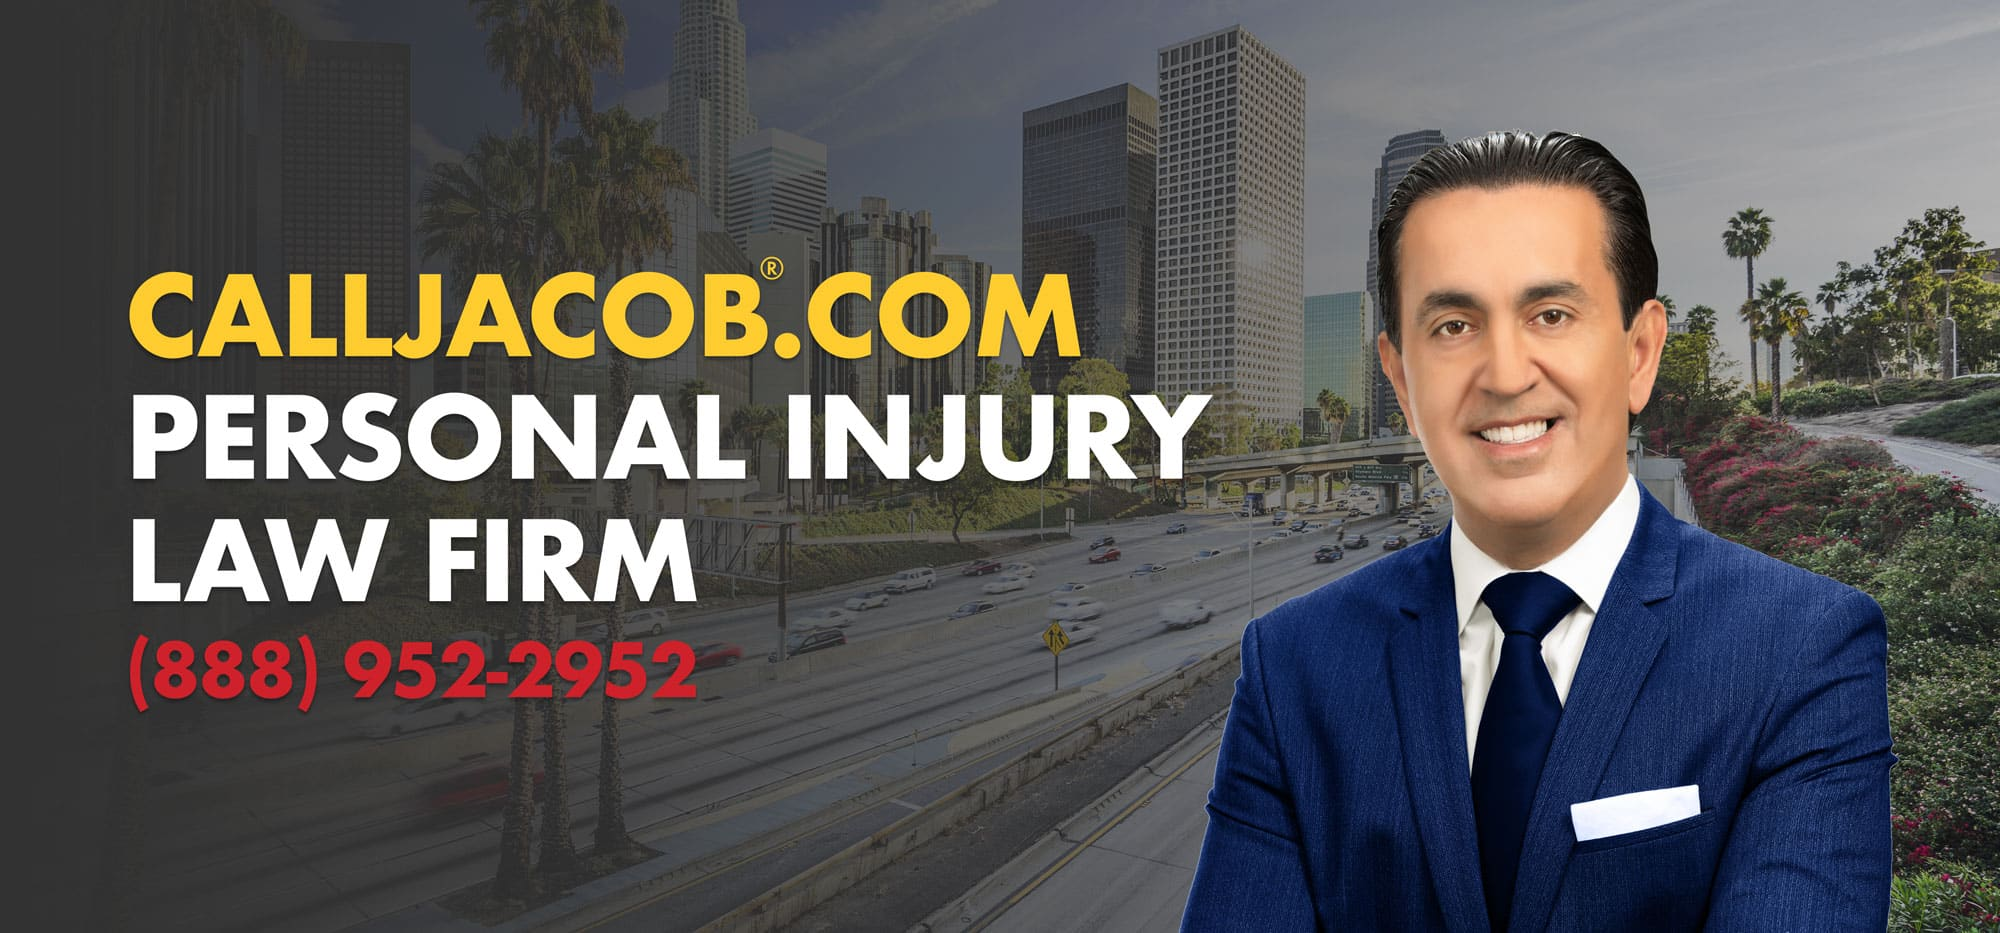 Top Neck Pain & Neck Injury Attorneys in Los Angeles